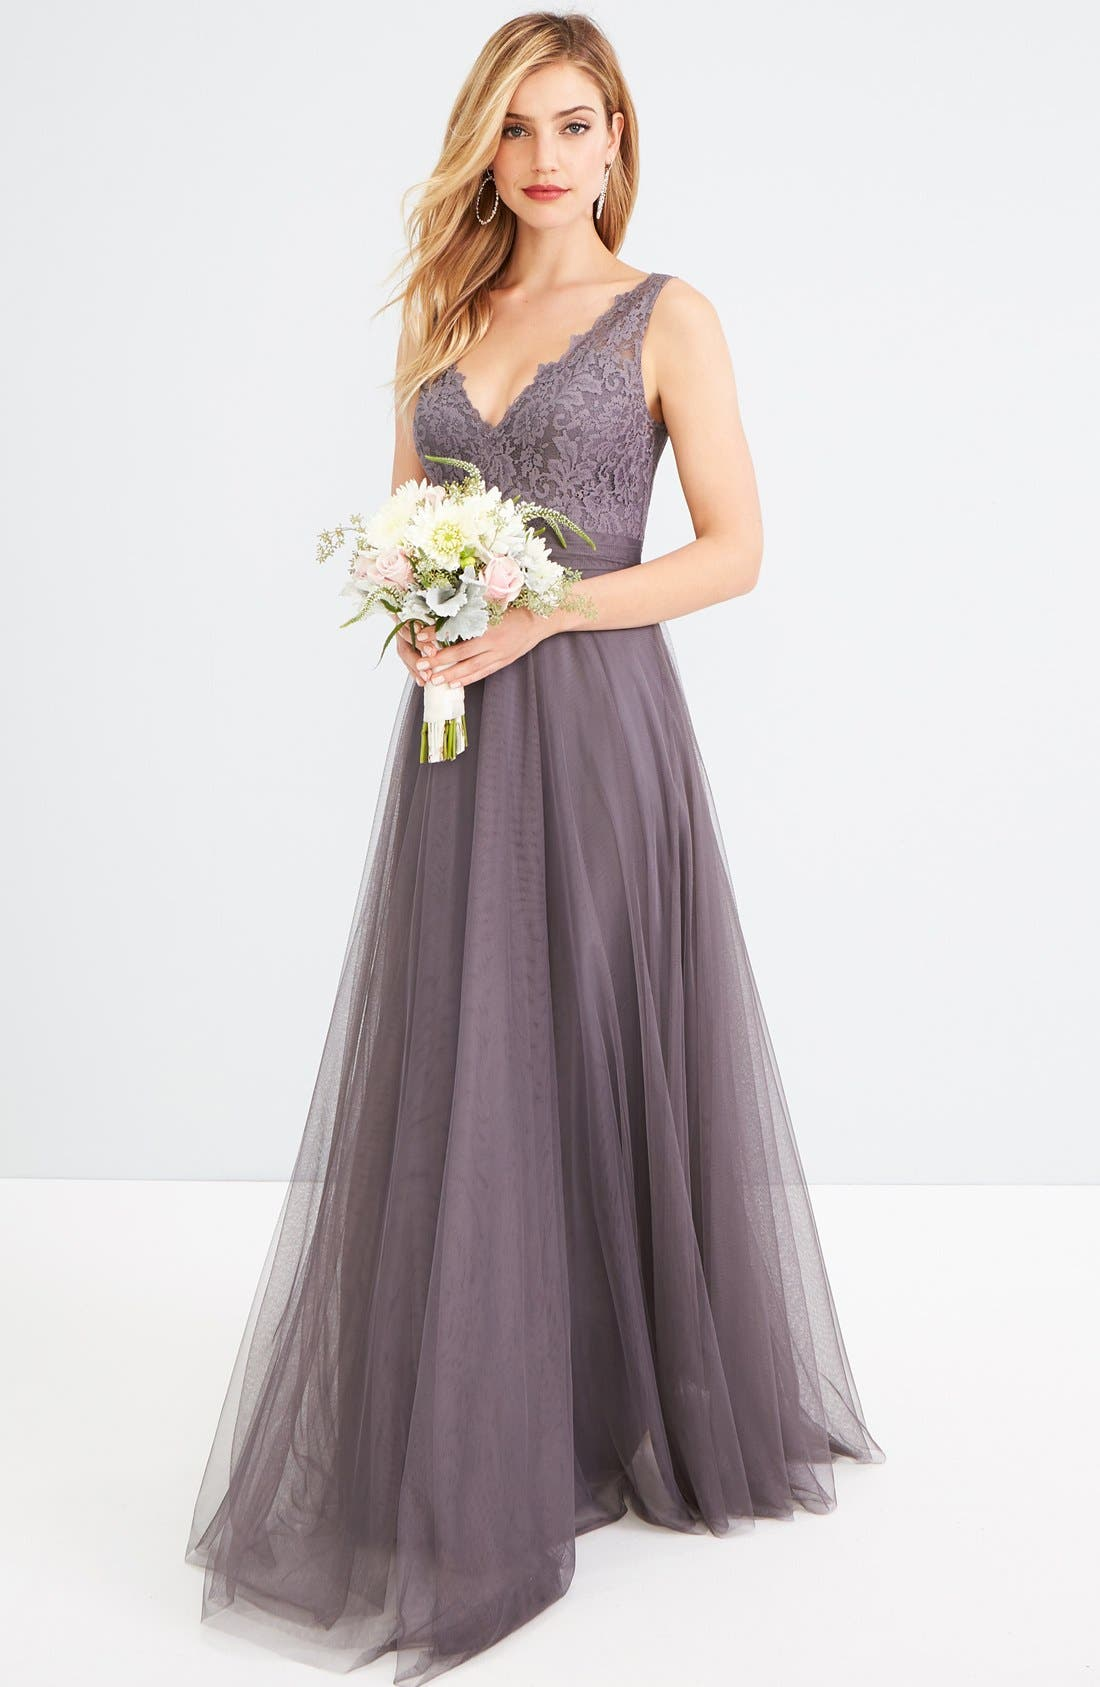 Watters bridesmaid wedding party dresses nordstrom ombrellifo Gallery